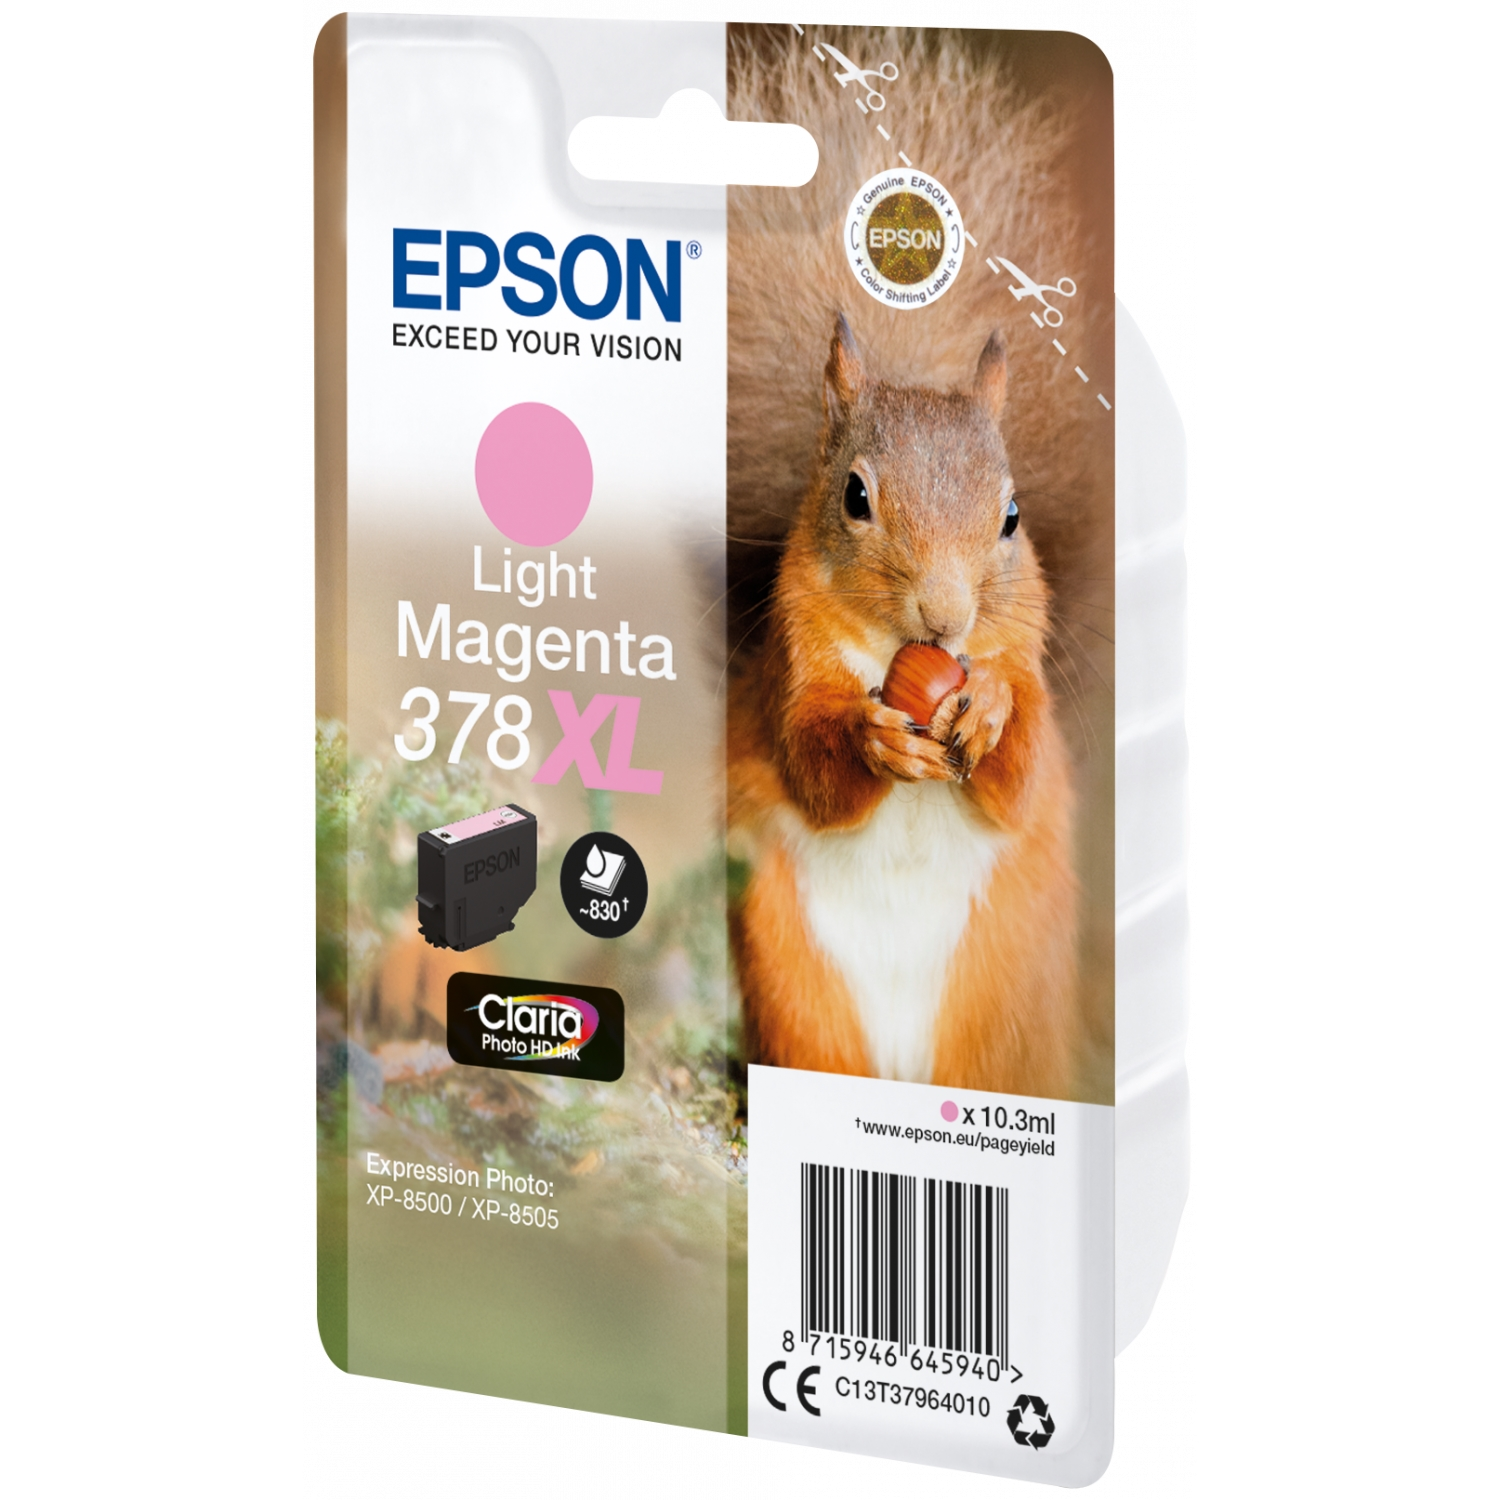 Original Epson 378XL Light Magenta High Capacity Ink Cartridge (C13T37964010)